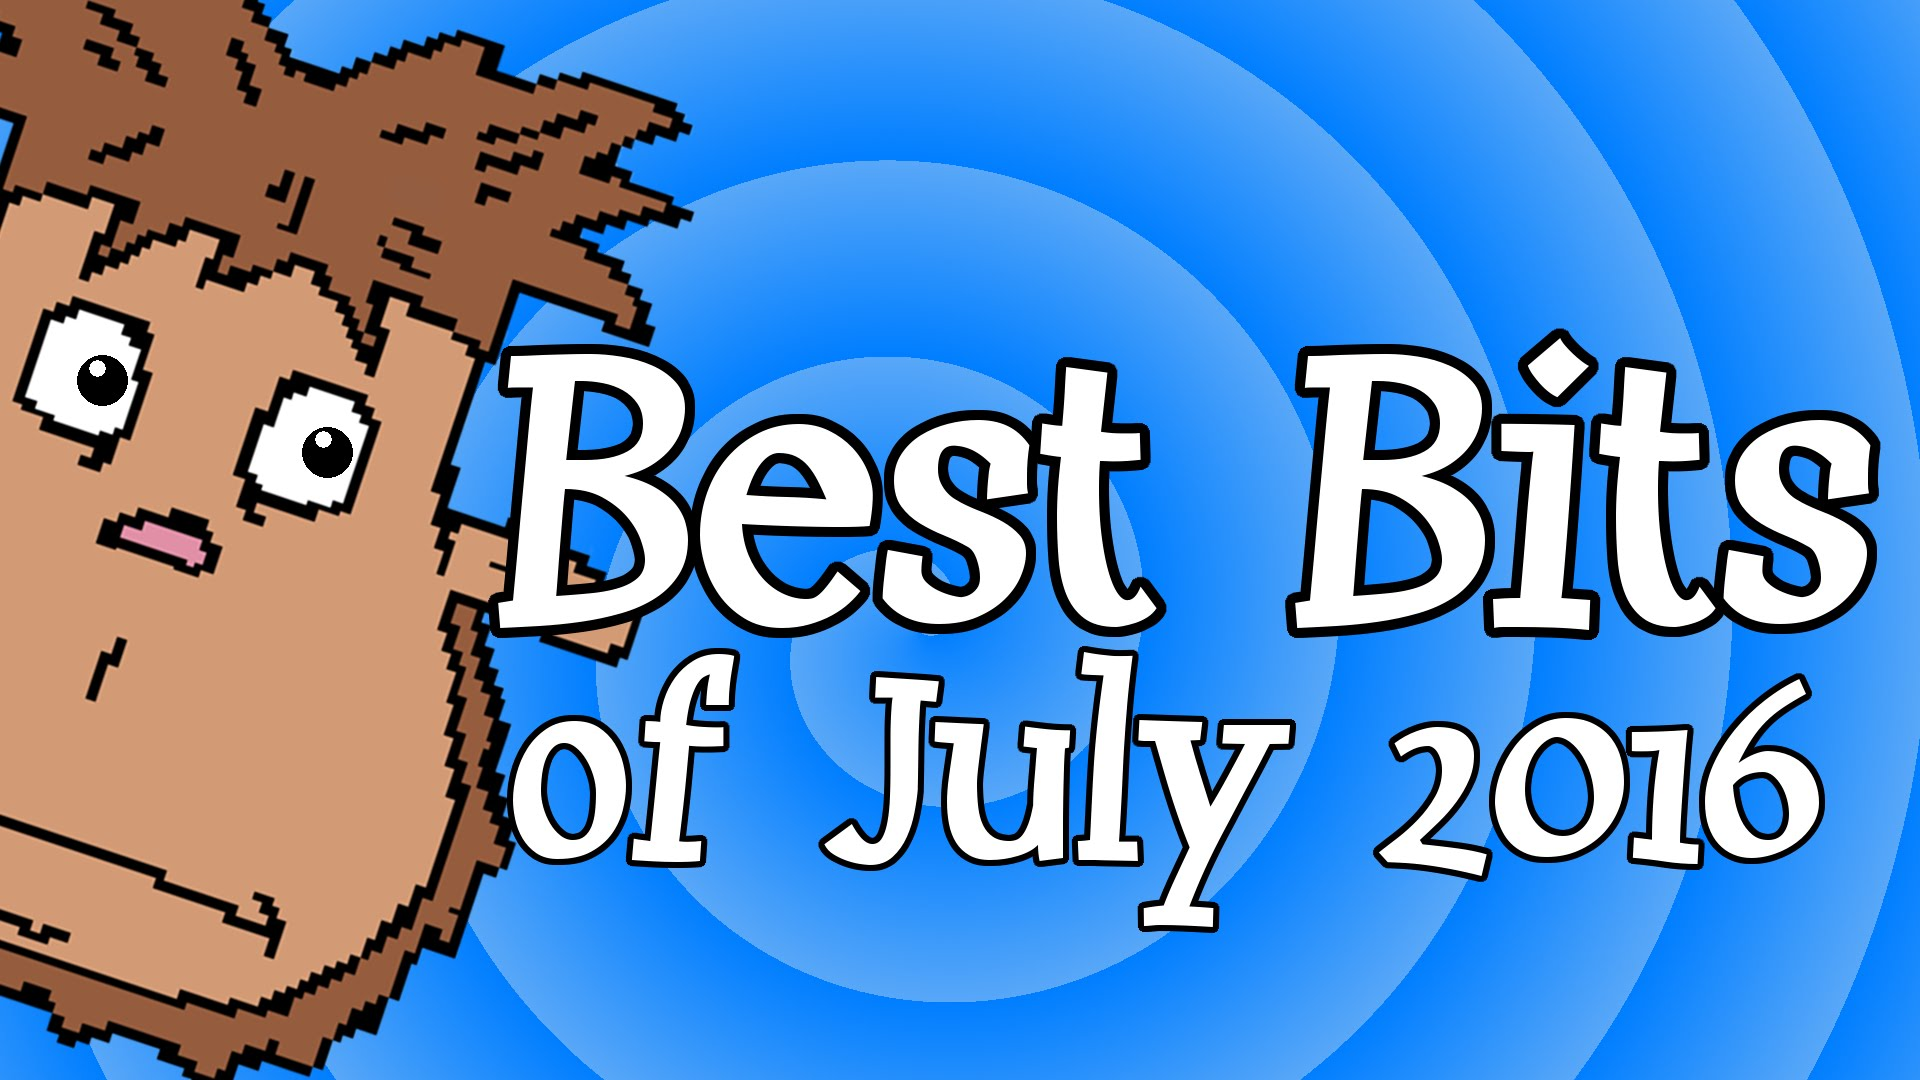 Bigfoot clipart smelly. Best bits july youtube